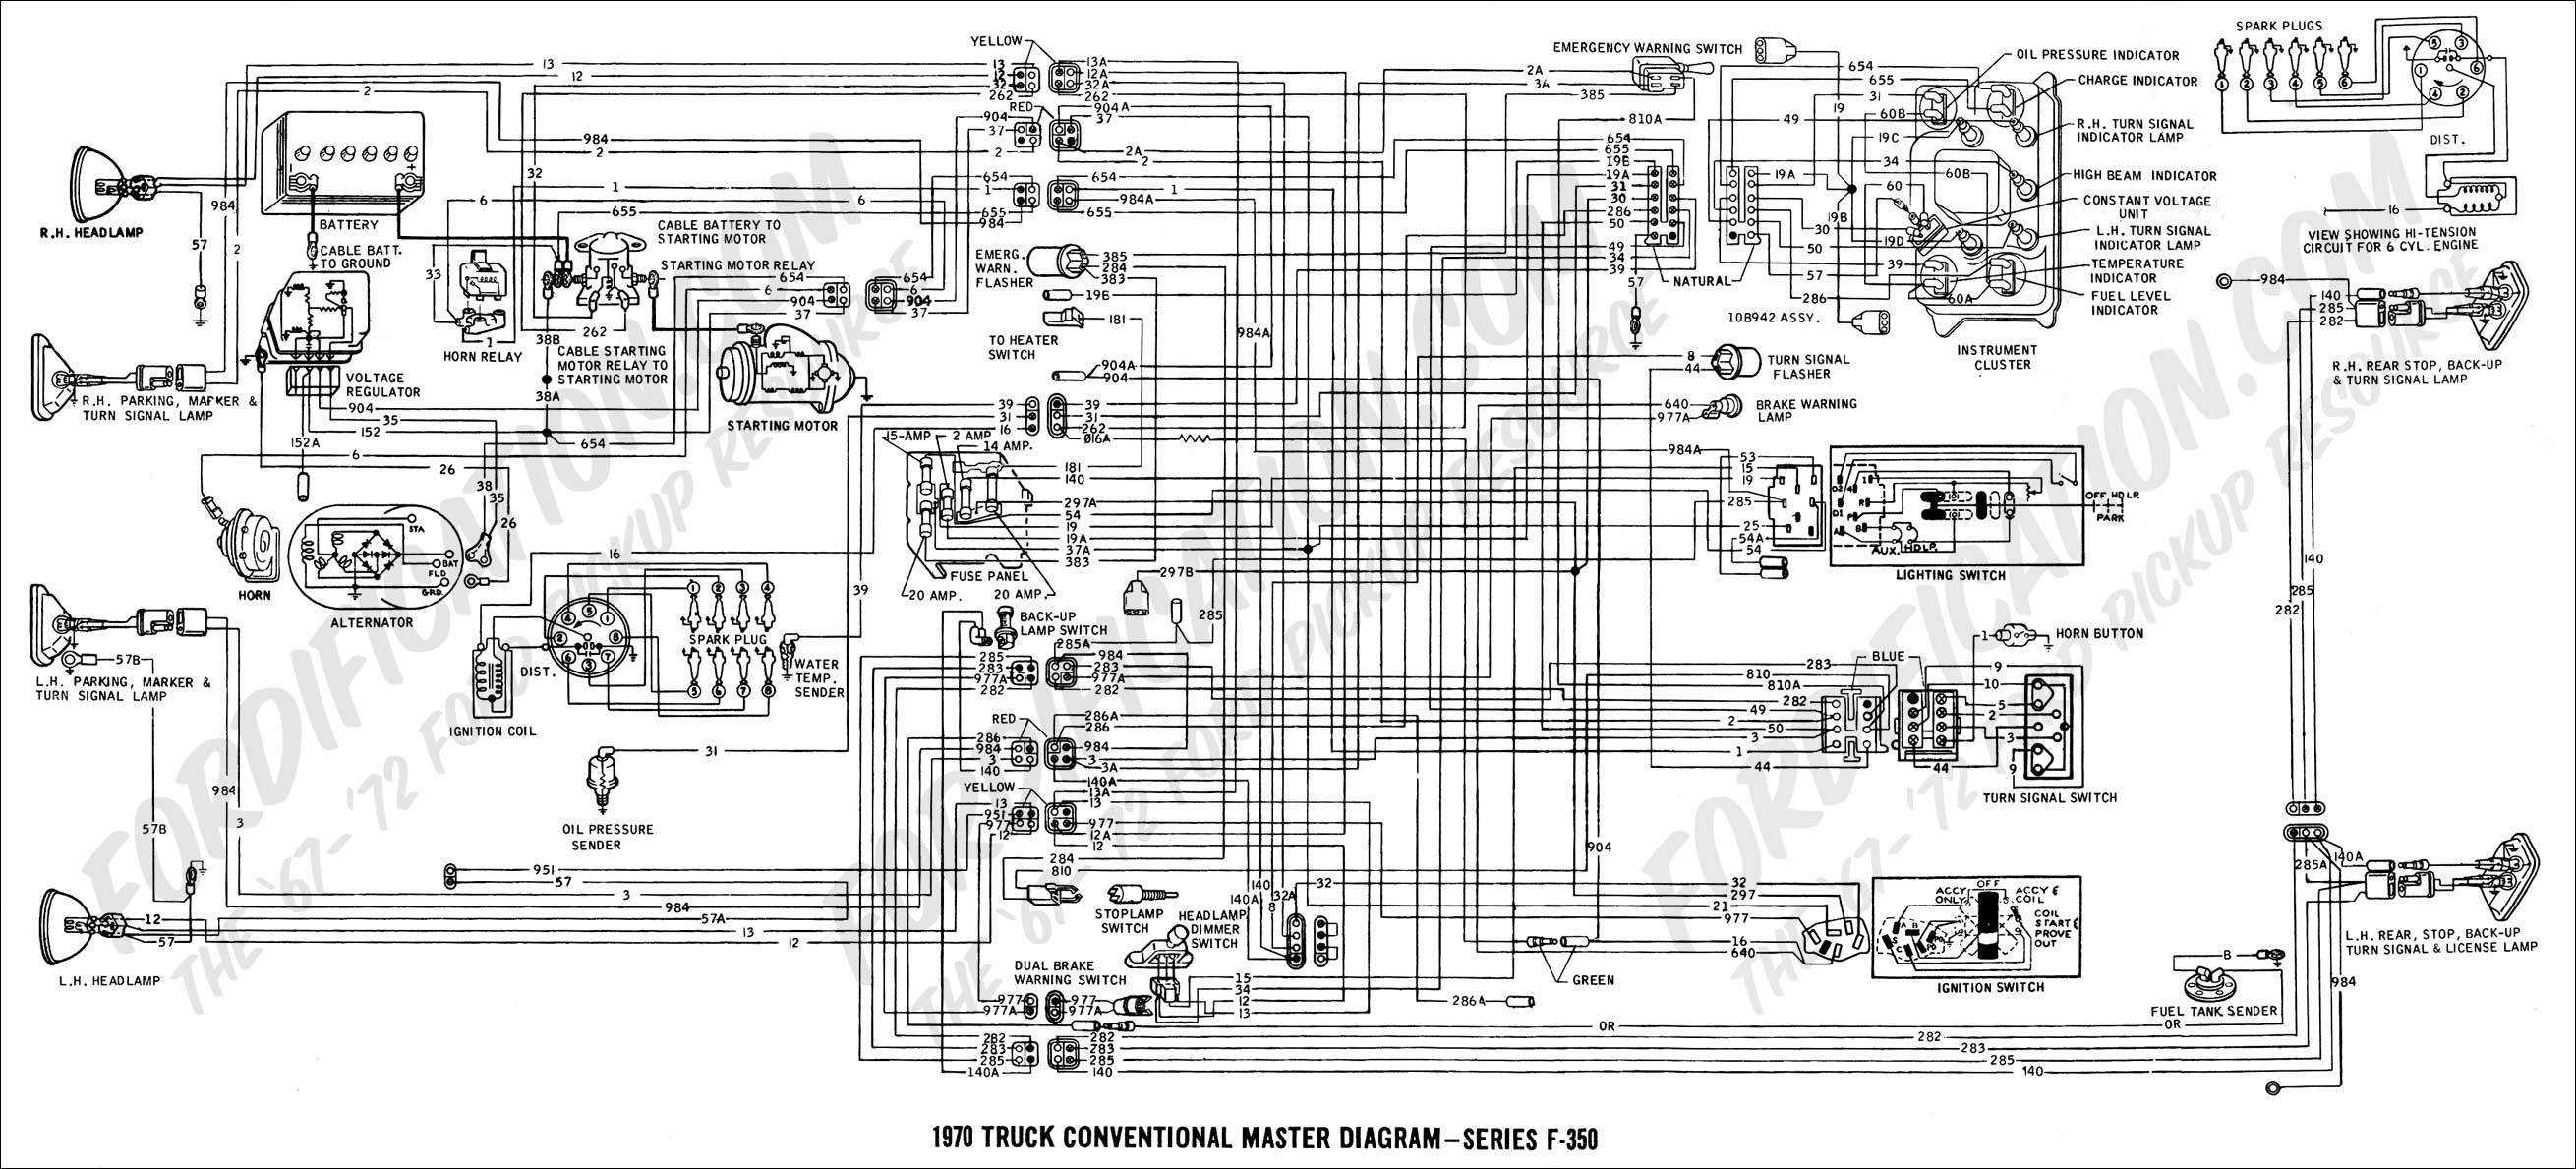 2001 Ford F150 Trailer Wiring Diagram Sample